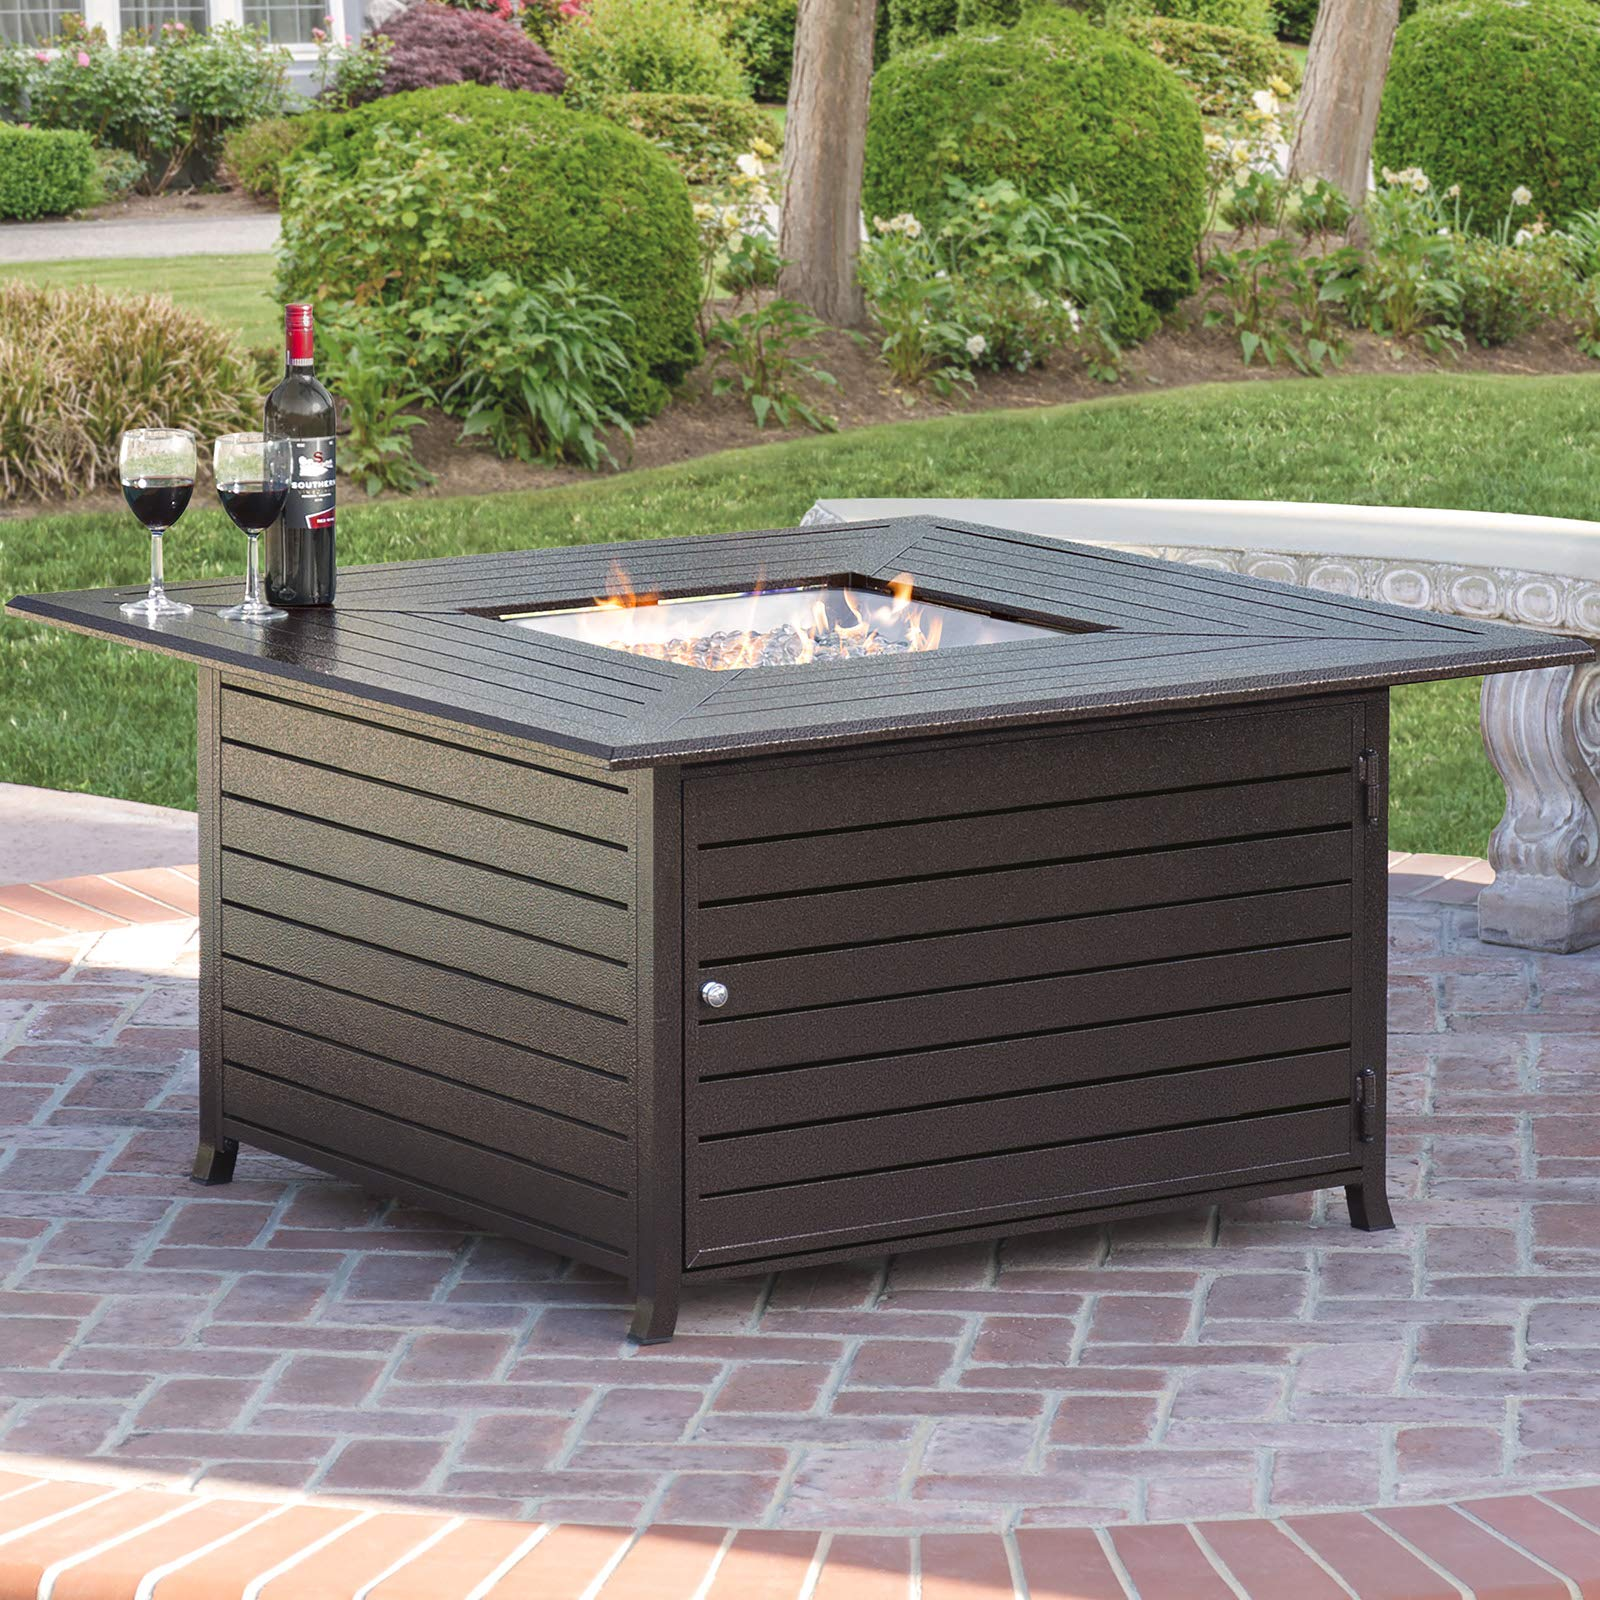 Best Choice Products BCP Extruded Aluminum Gas Outdoor Fire Pit Table With Cover by Best Choice Products